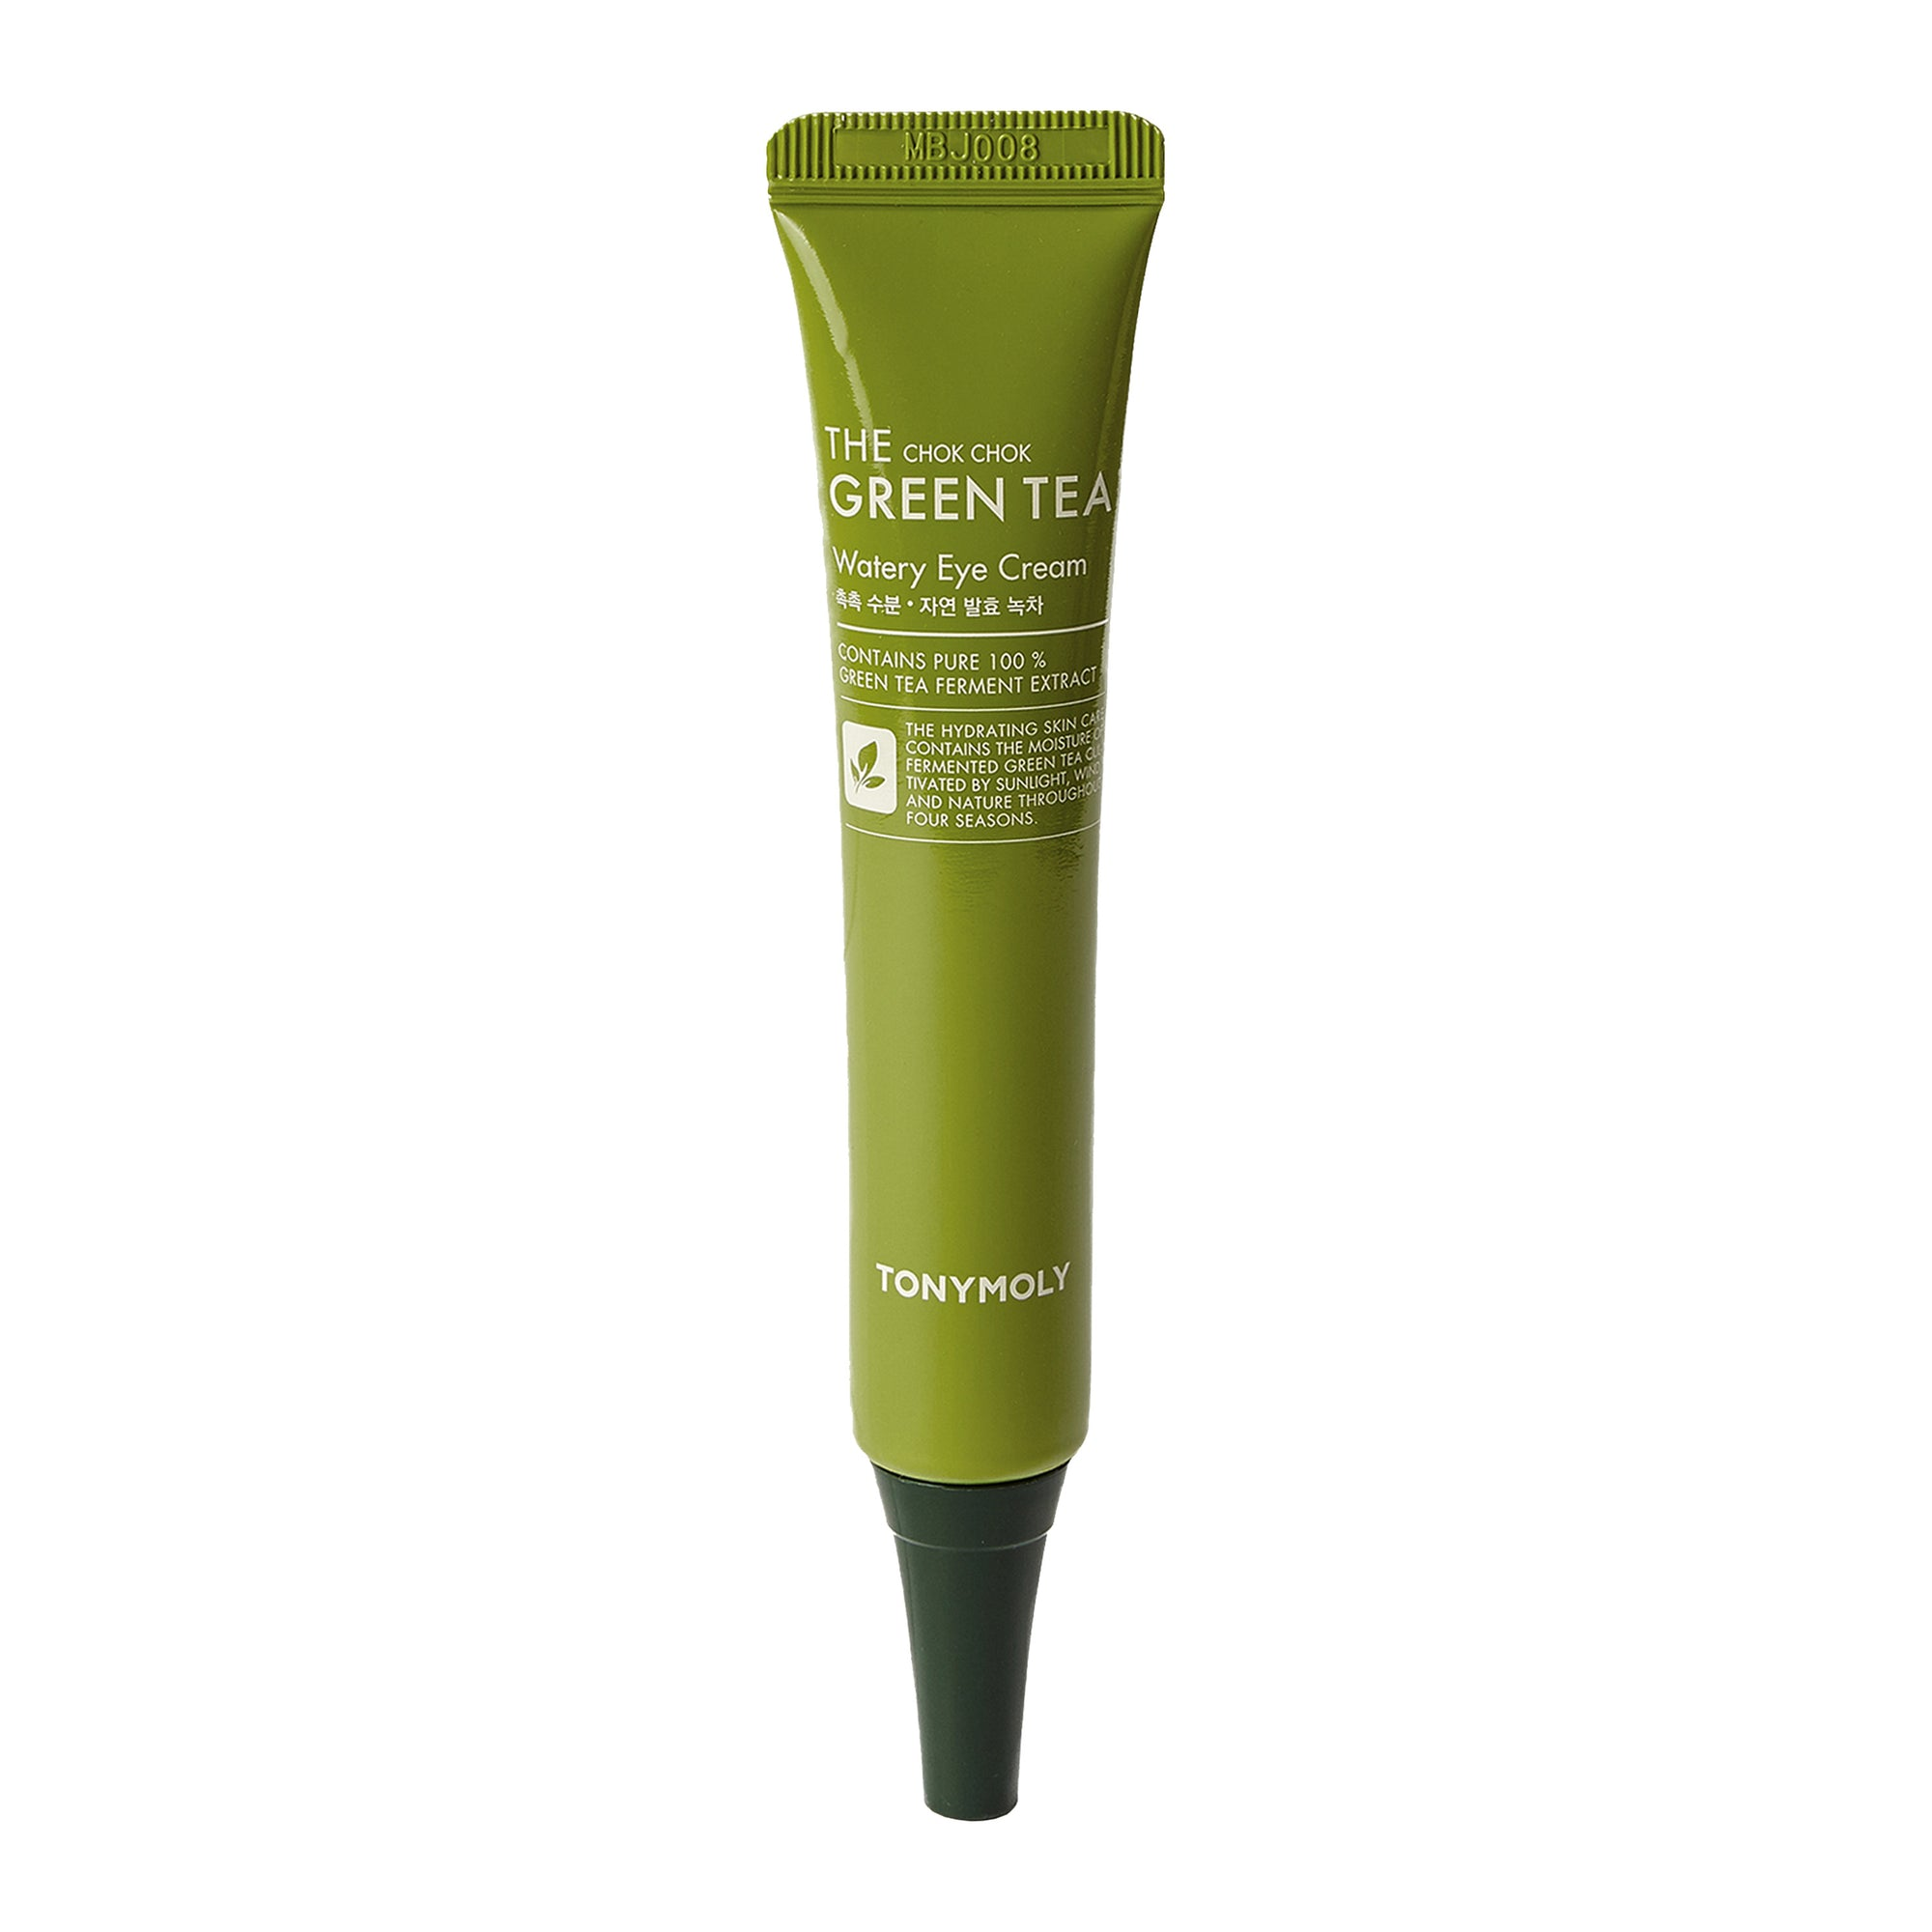 TONYMOLY The Chok Chok Green Tea Watery Eye Cream 30ml | Korean Skin Care